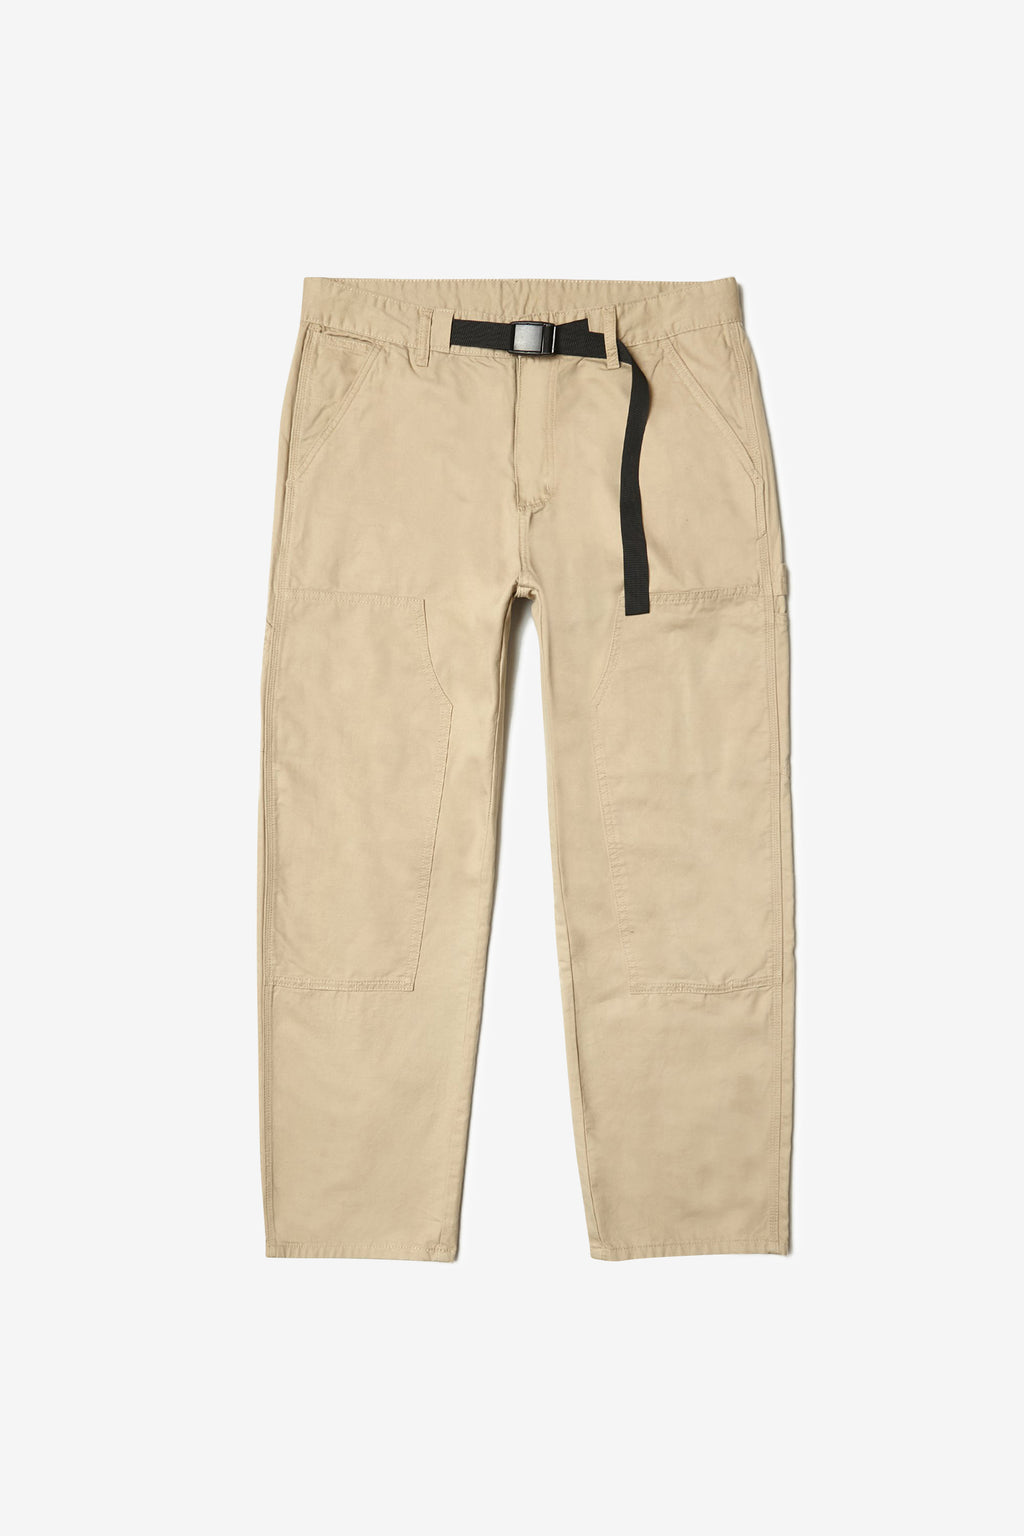 Blacksmith - Double Knee Carpenter Pants - Stone